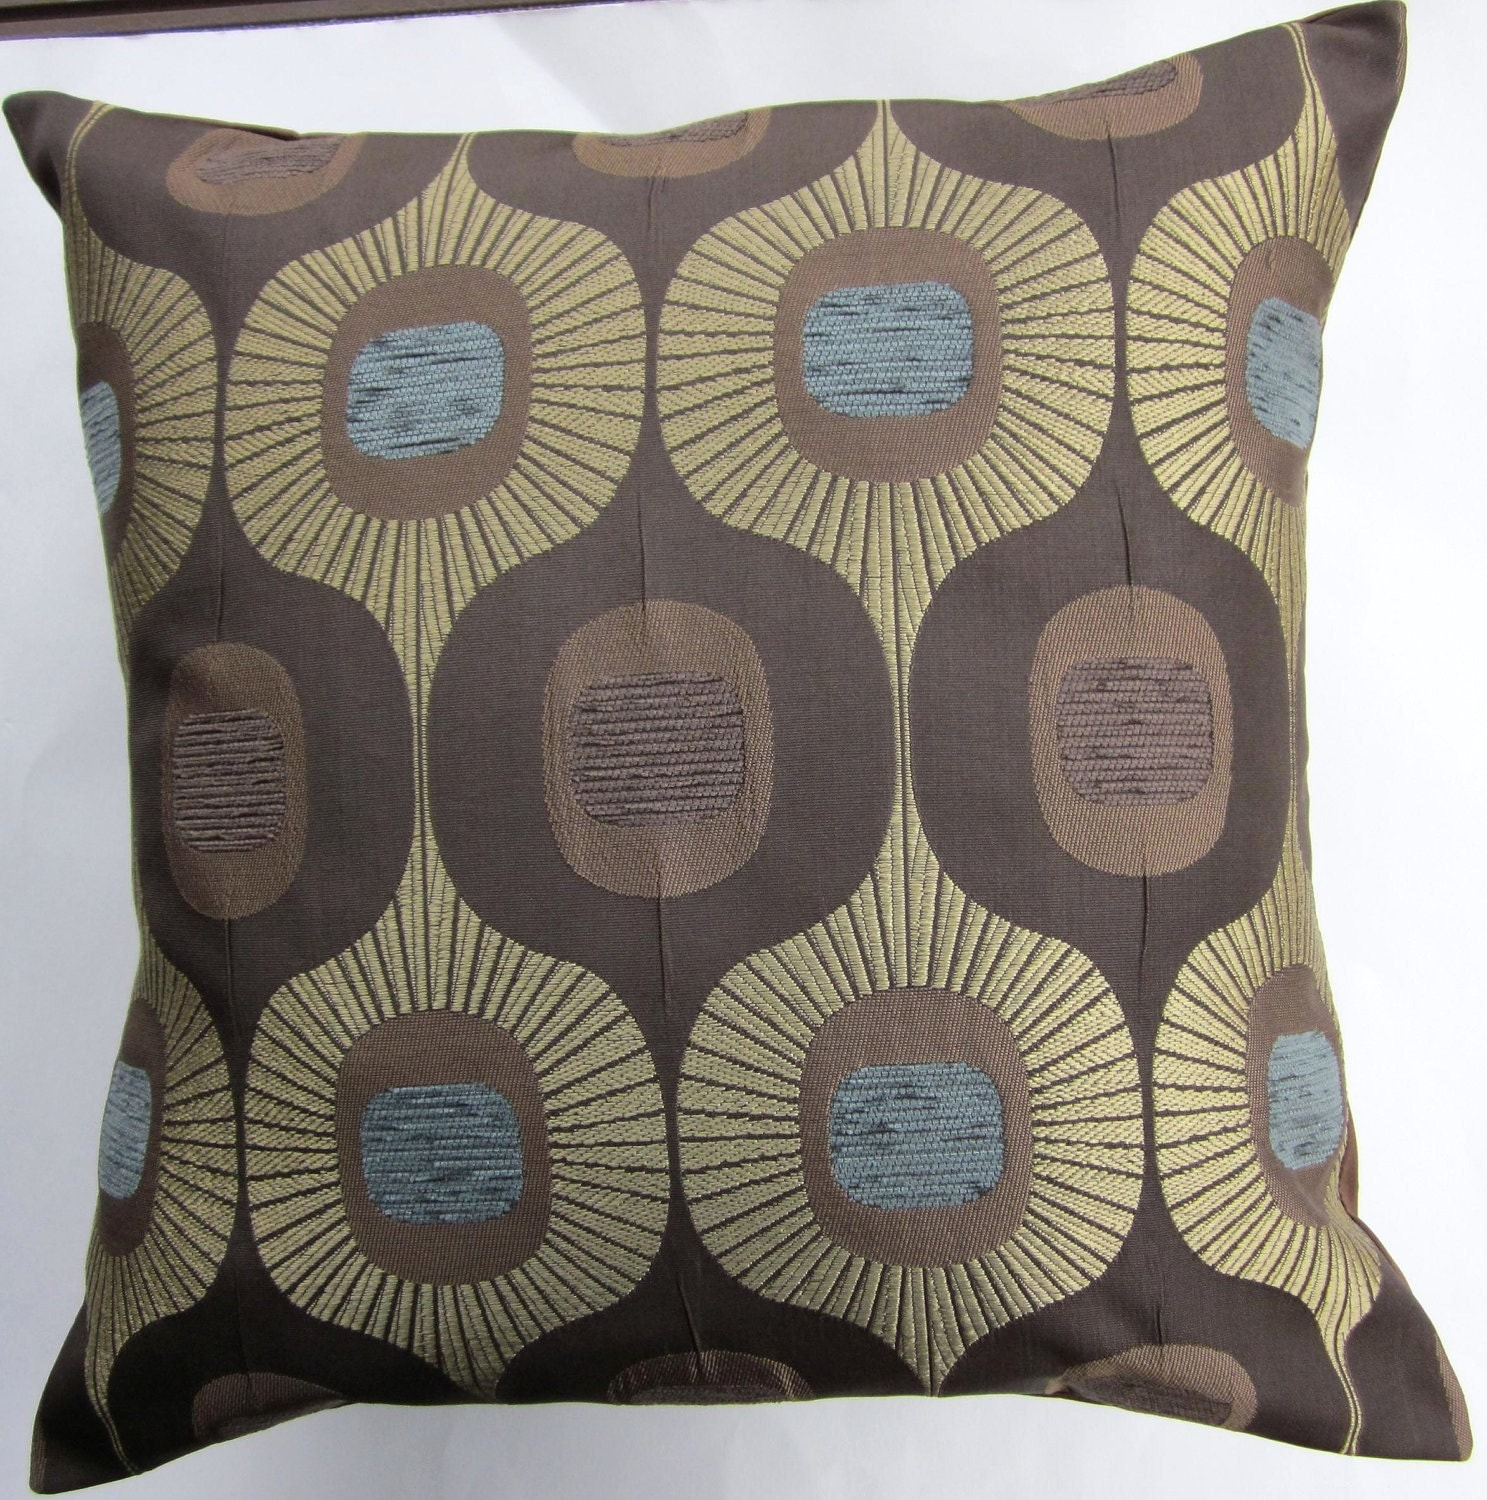 Brown Throw Pillows Etsy : Brown Throw Pillow Cover Brown Cushion Cover with Gold and